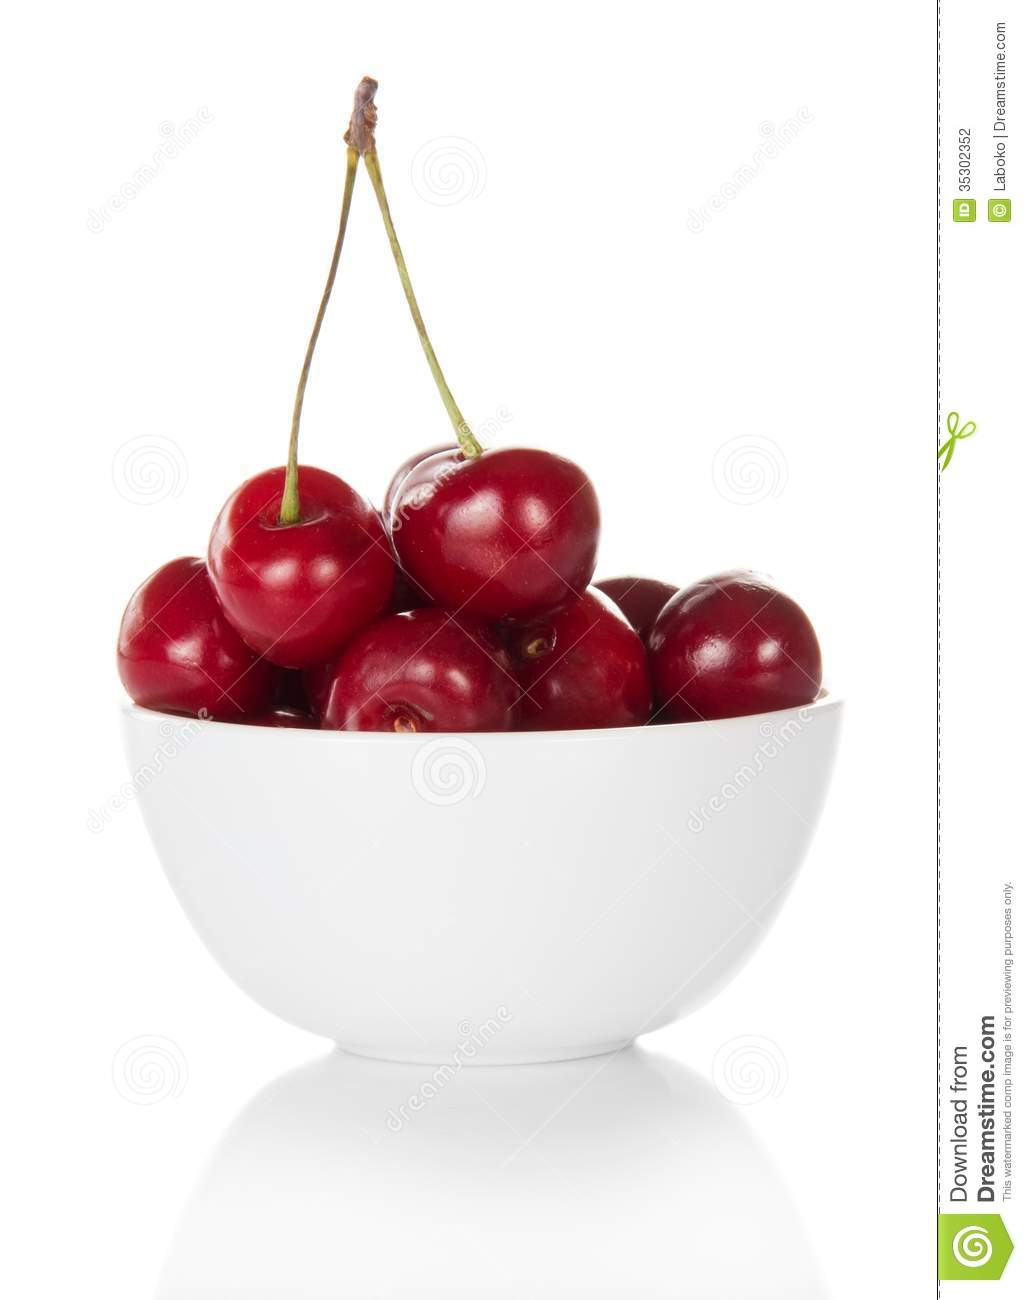 Bowl of cherries clipart.